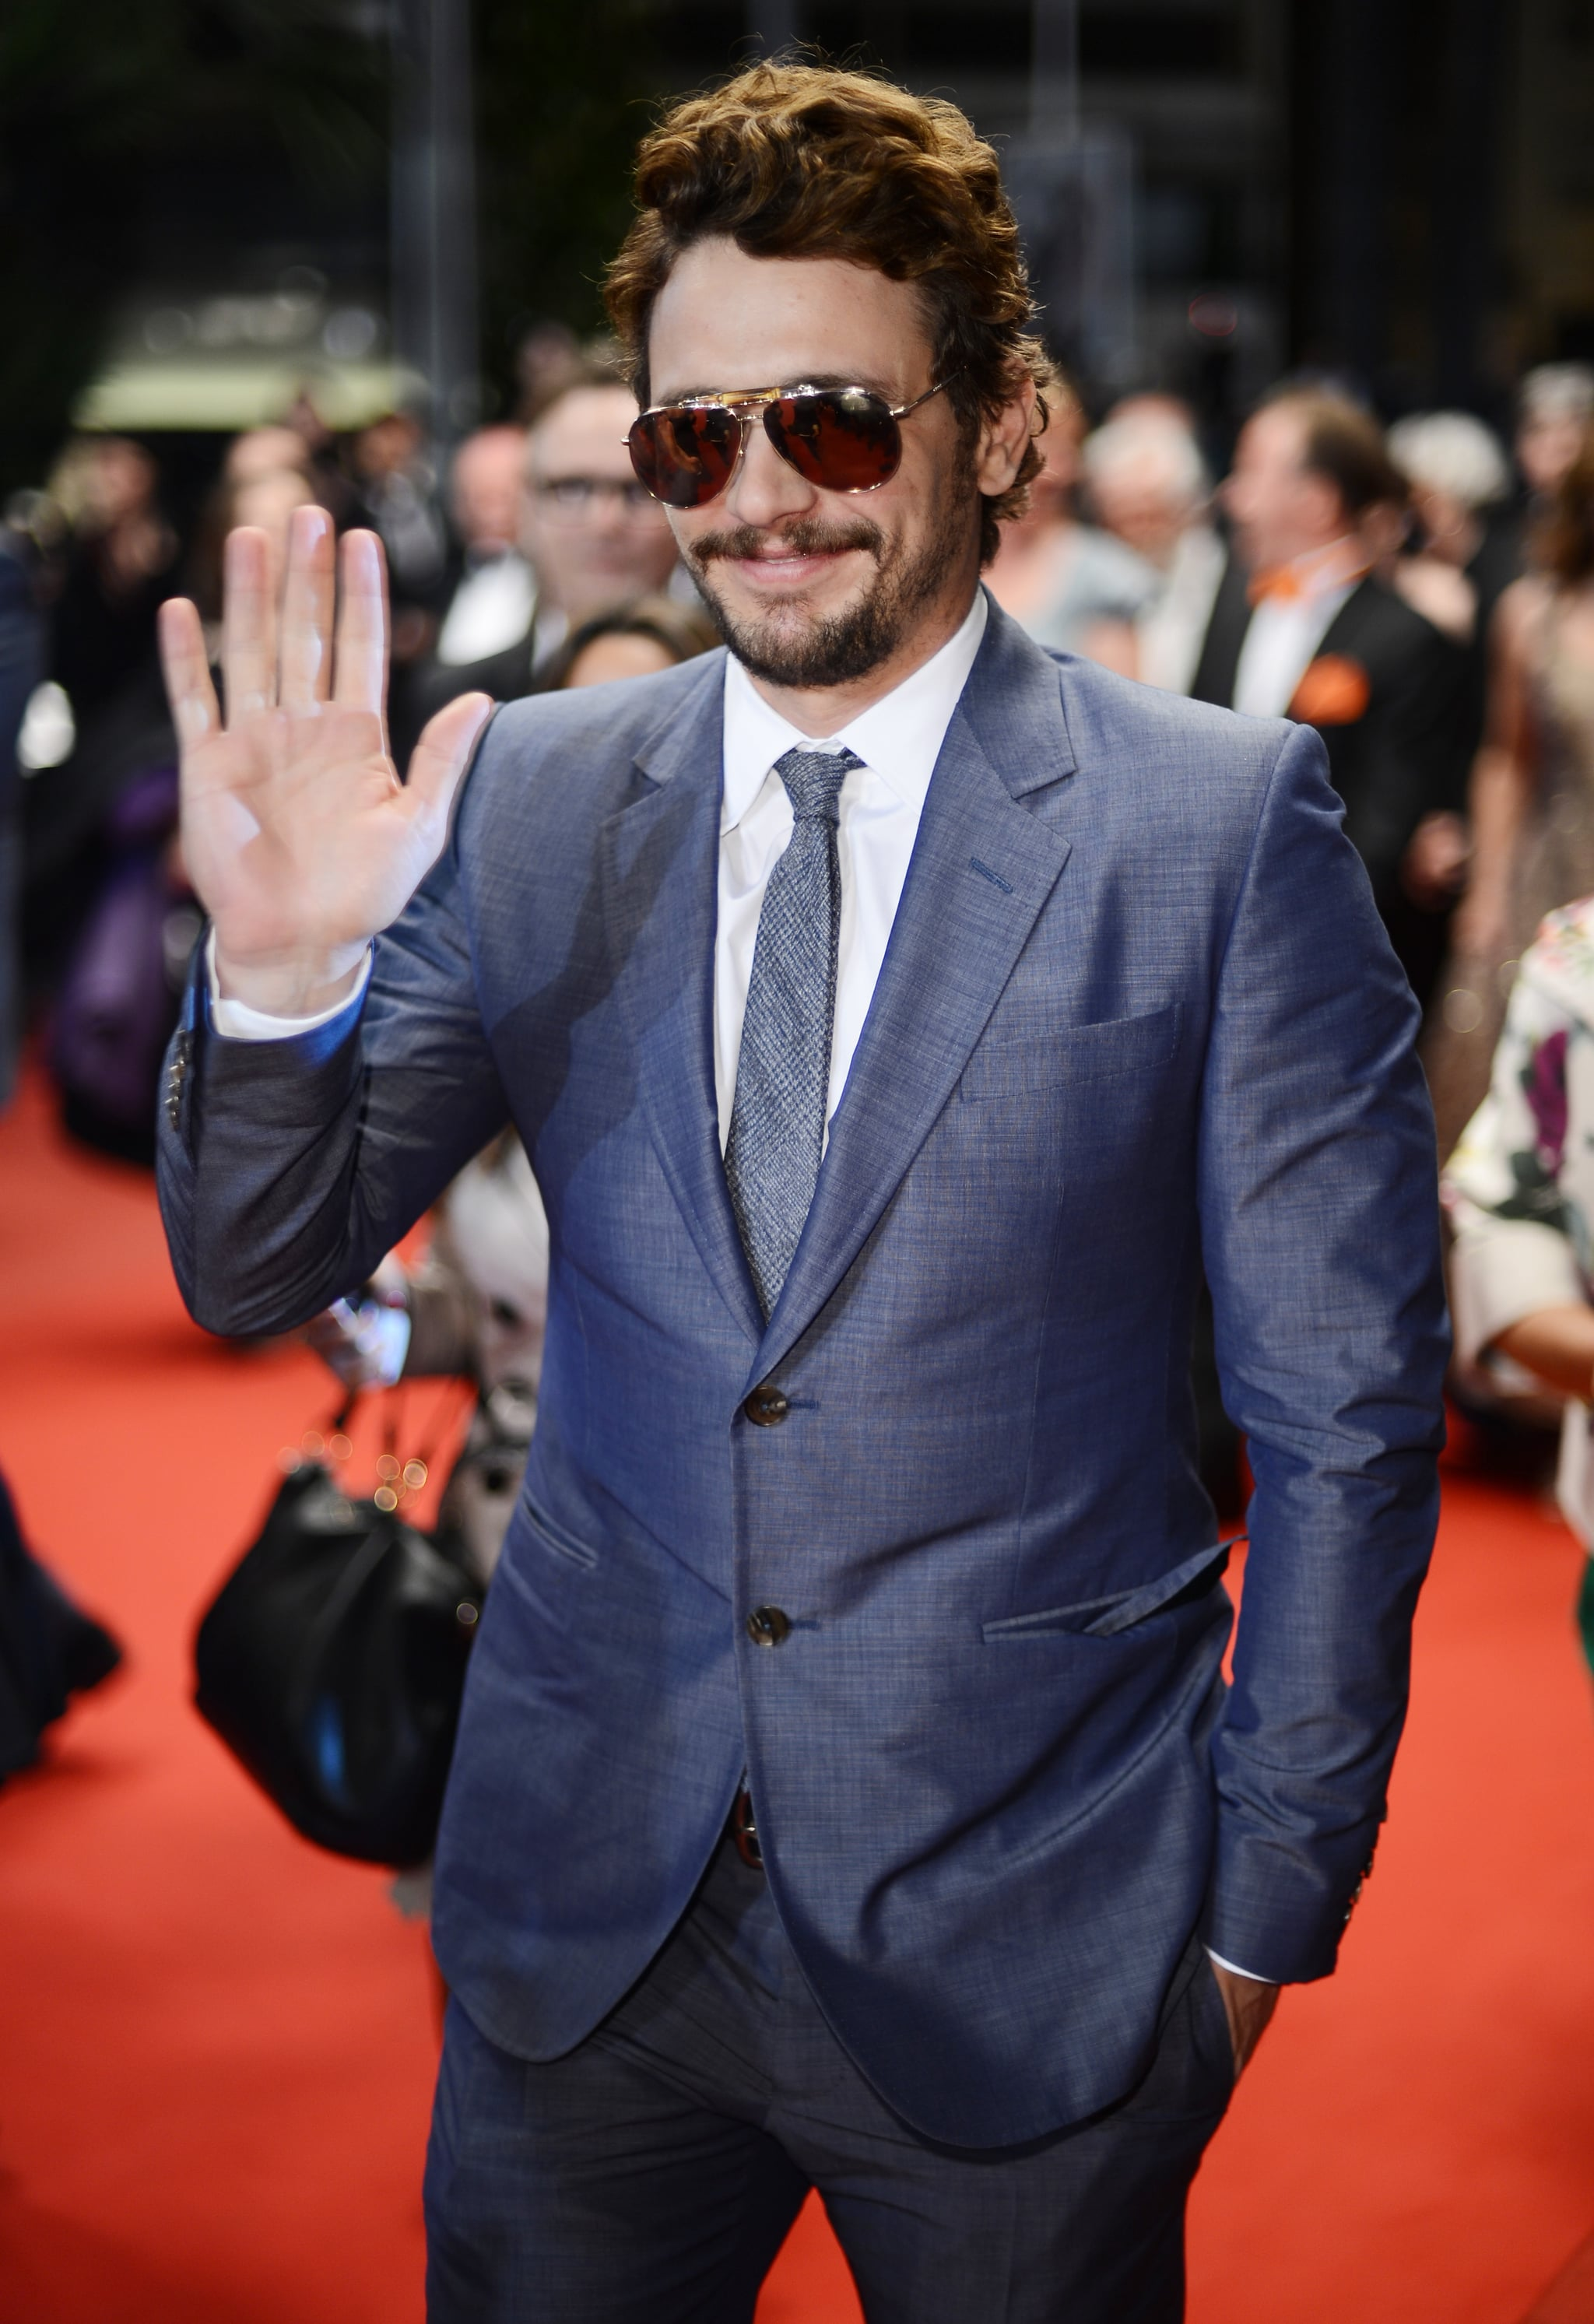 James Franco kept his shades on for the evening premiere of Borgman in 2013.